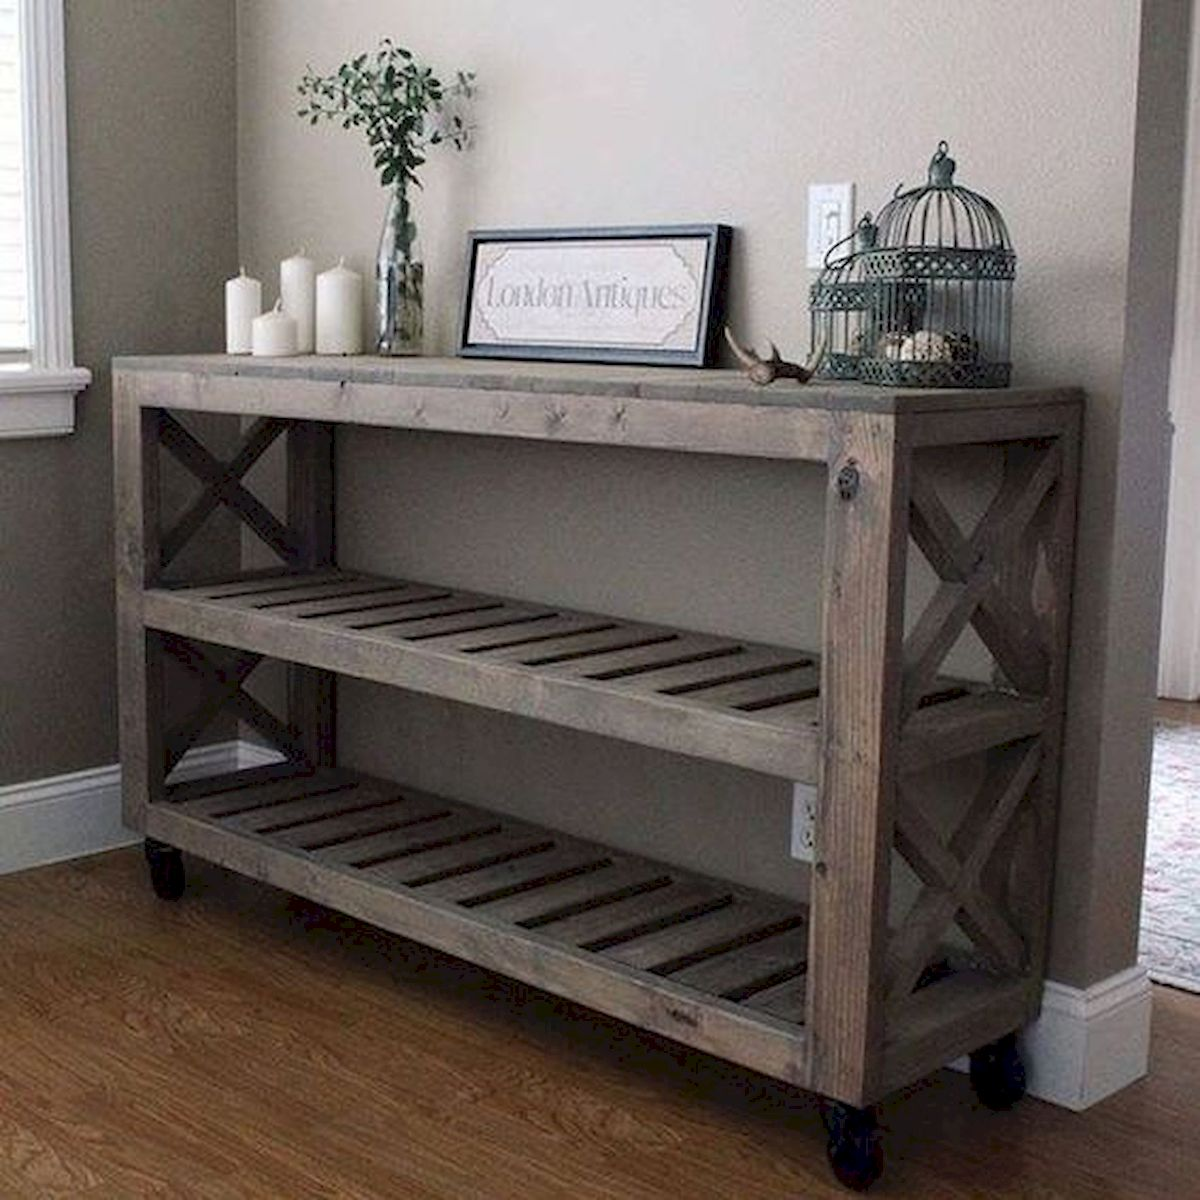 45 Awesome Furniture Ideas for Small House With Wood Project Ideas (14)